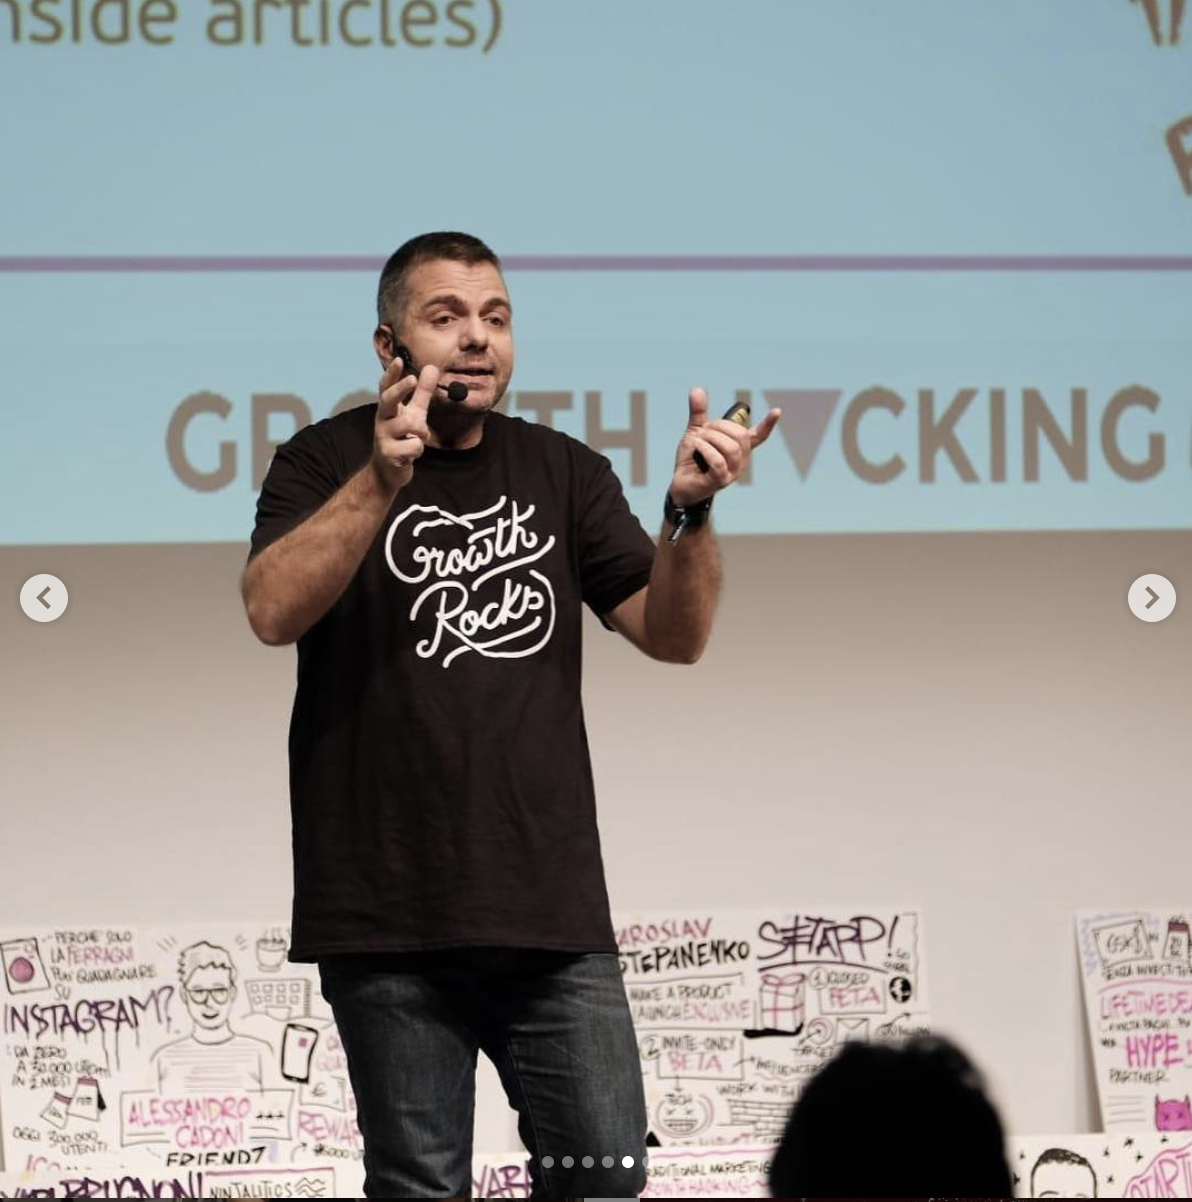 Speaking in GH-Day Italy